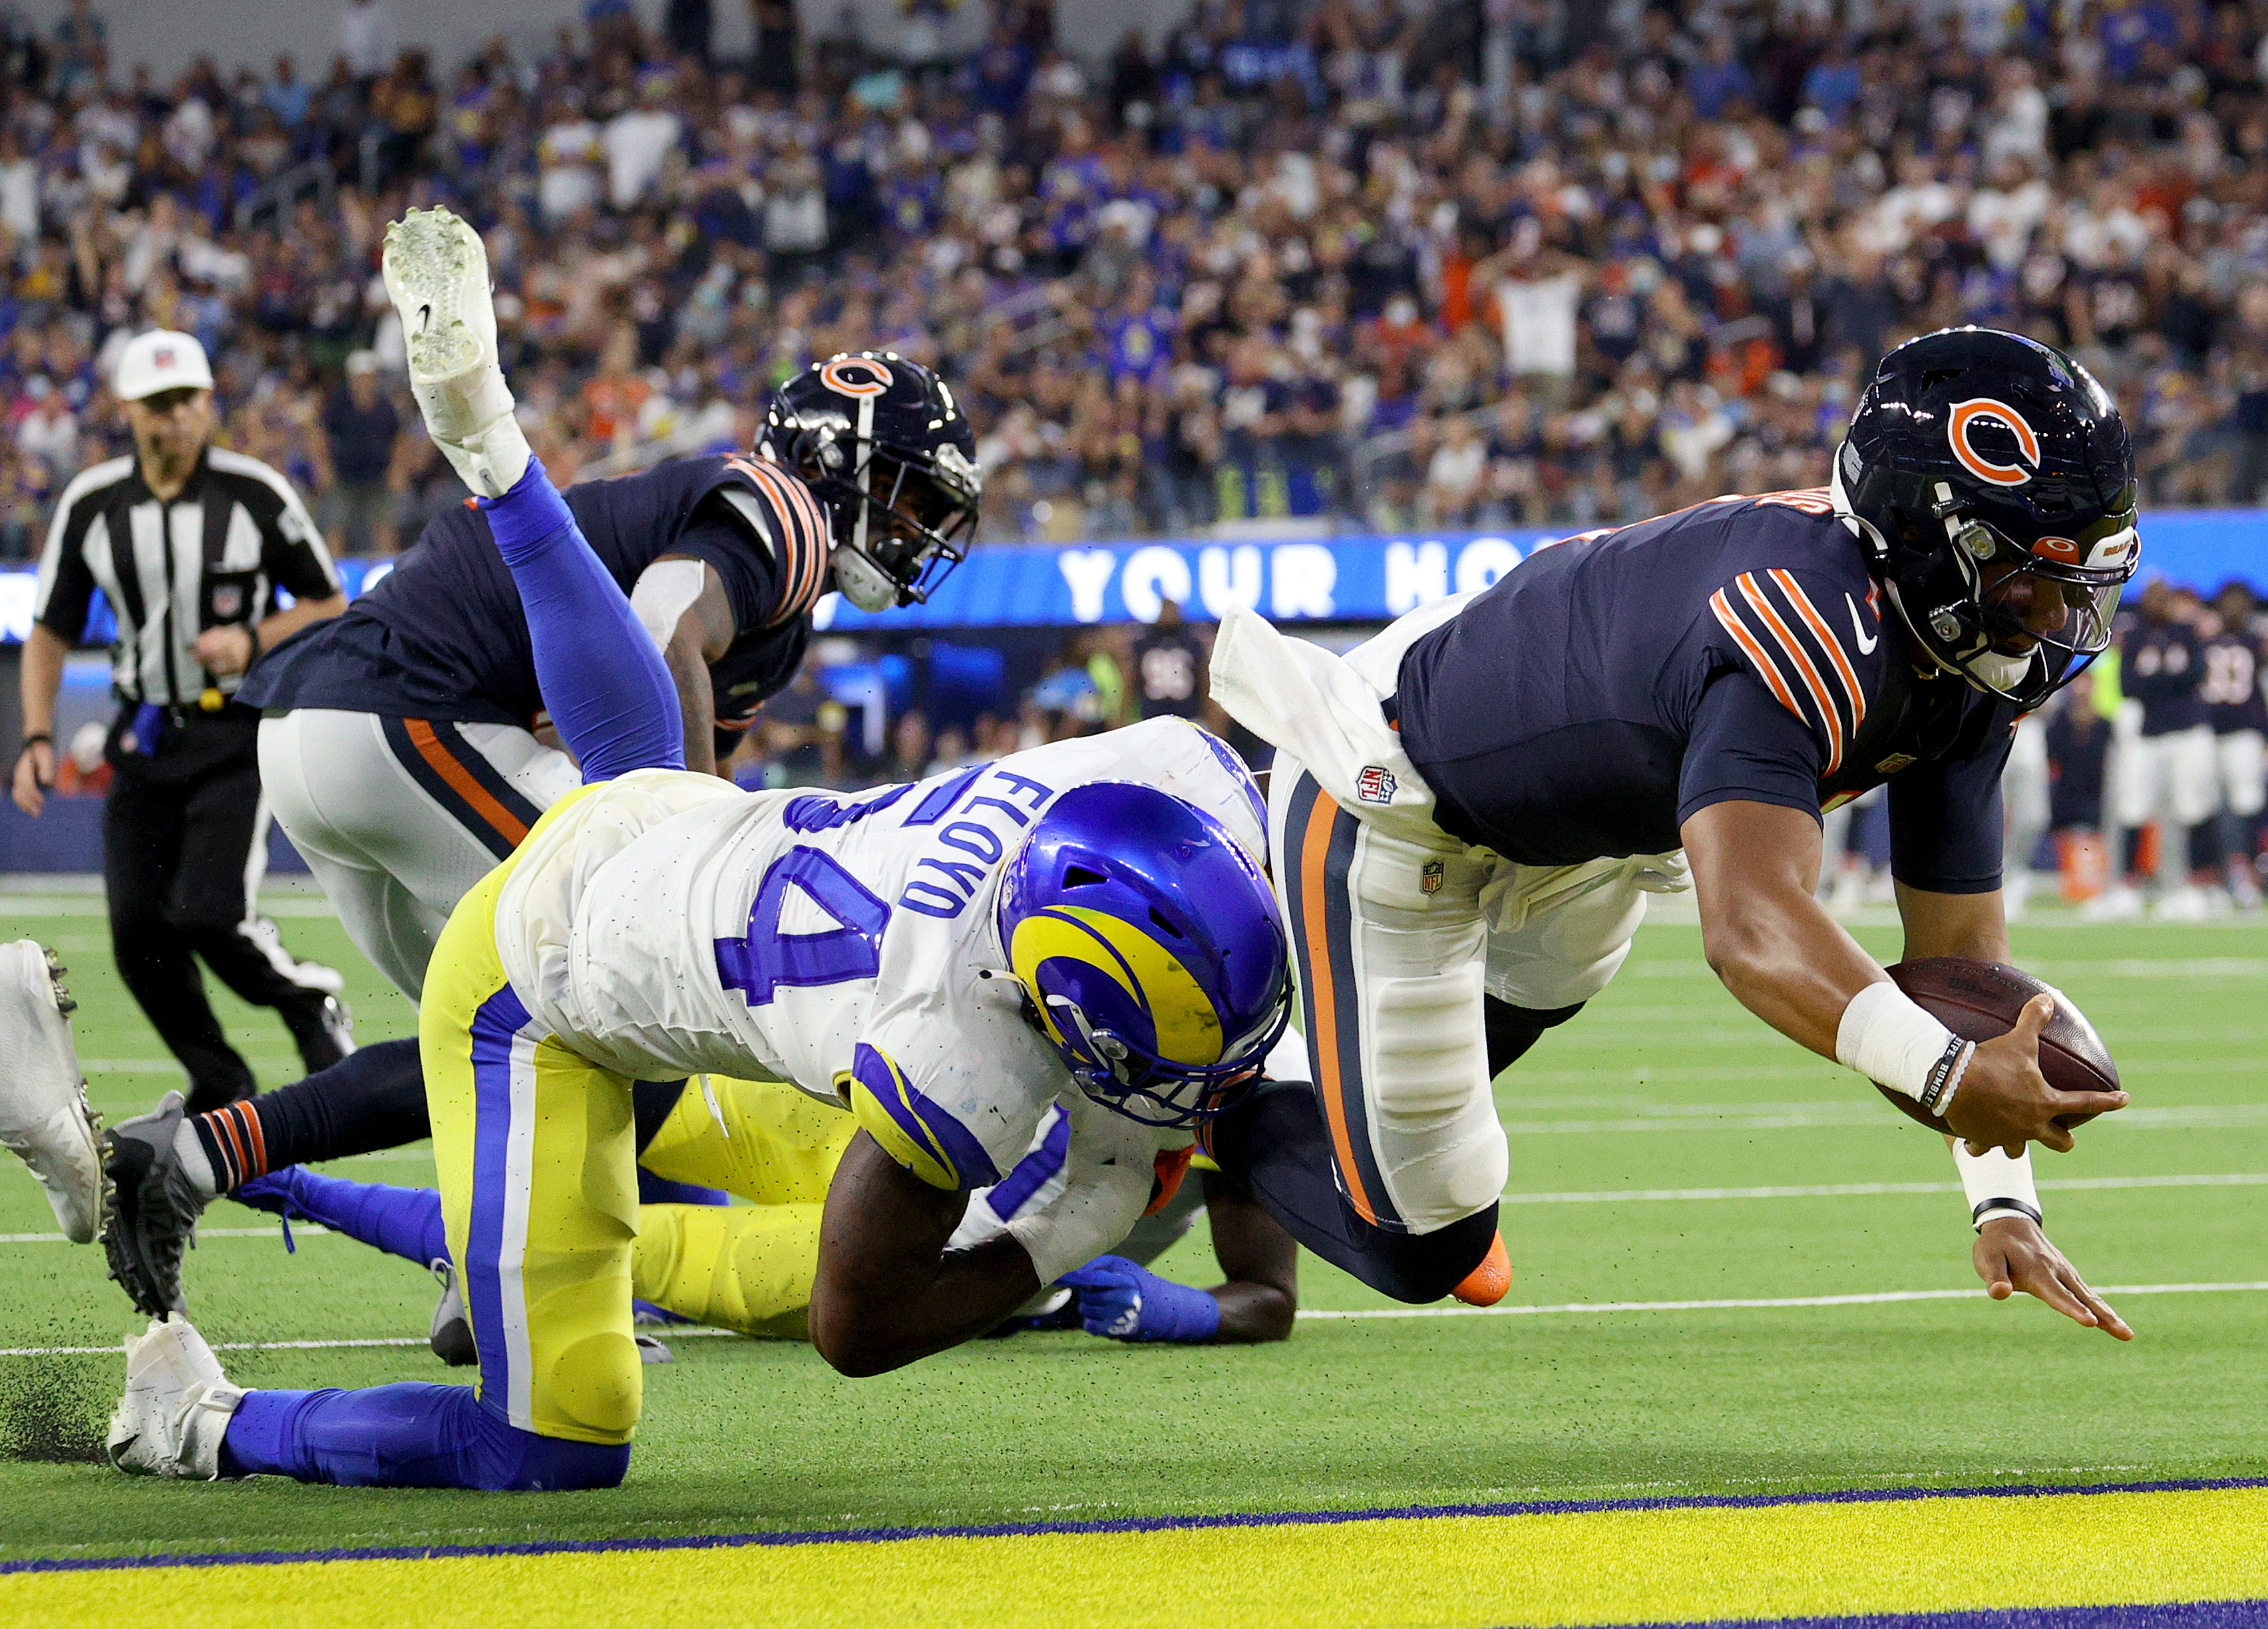 Bears quarterback Justin Fields scores against the Rams on Sunday.